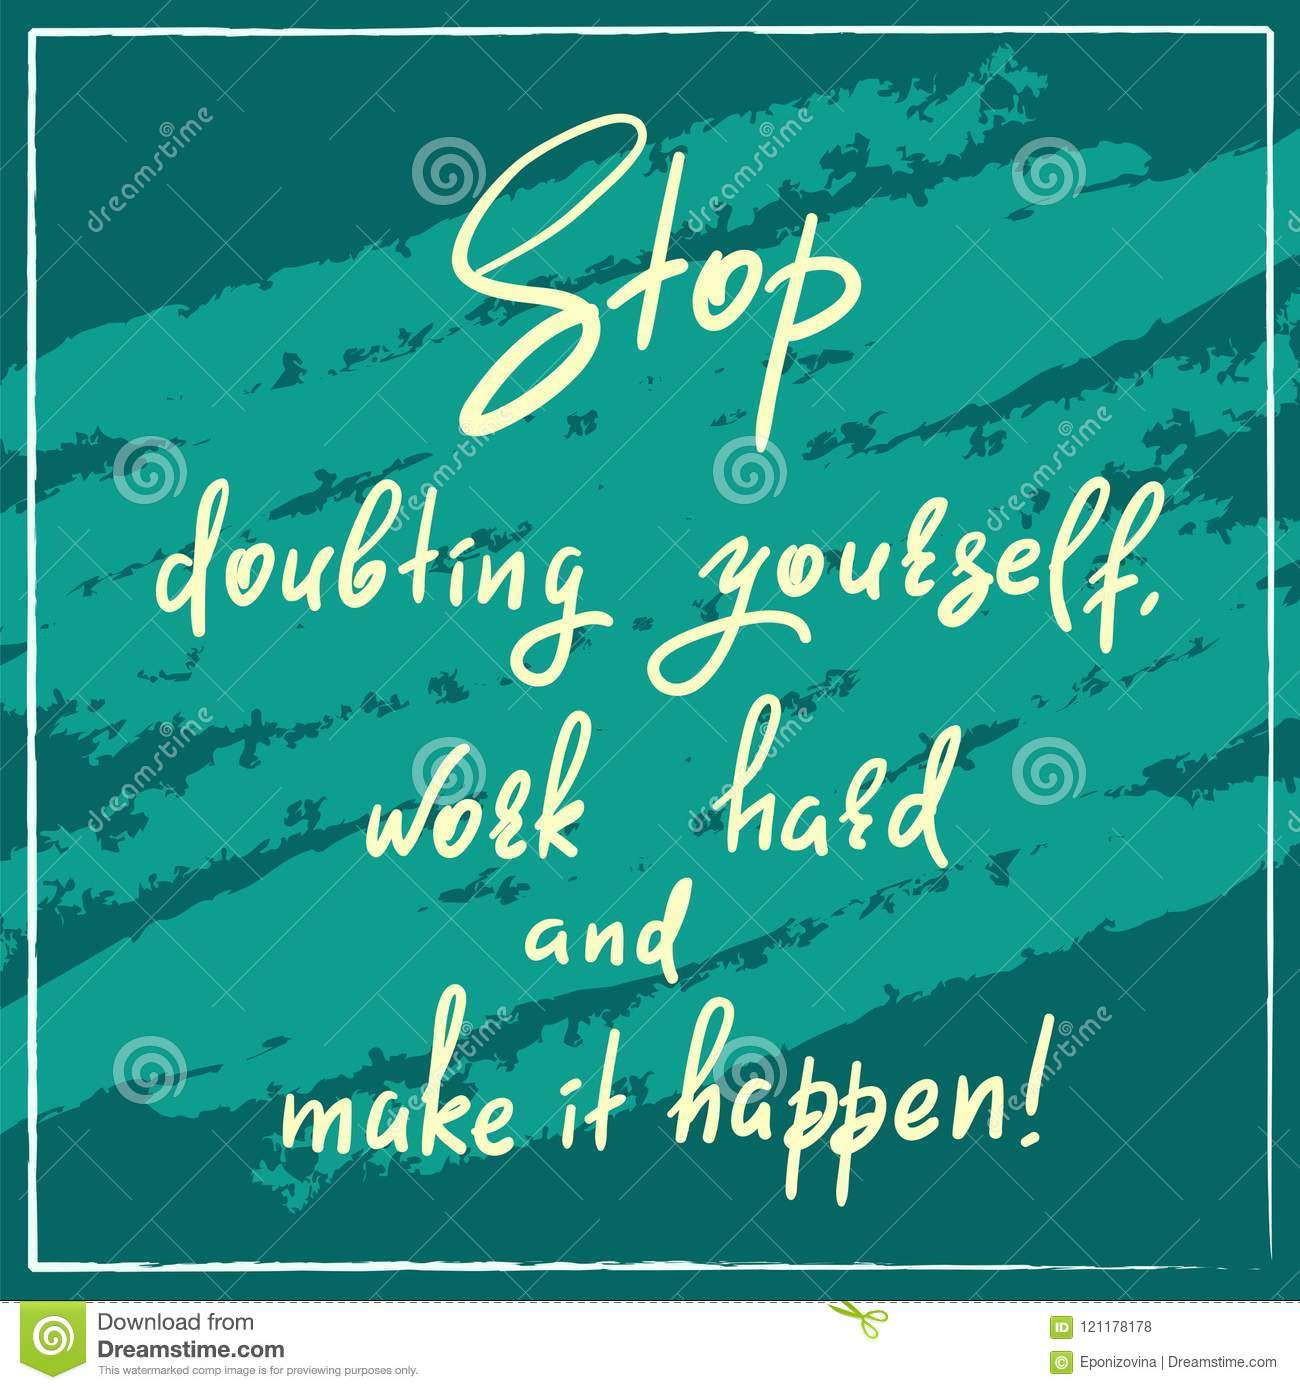 Funny Work Quotes | Stop Doubting Yourself Work Hard And Make It Happen Handwritten